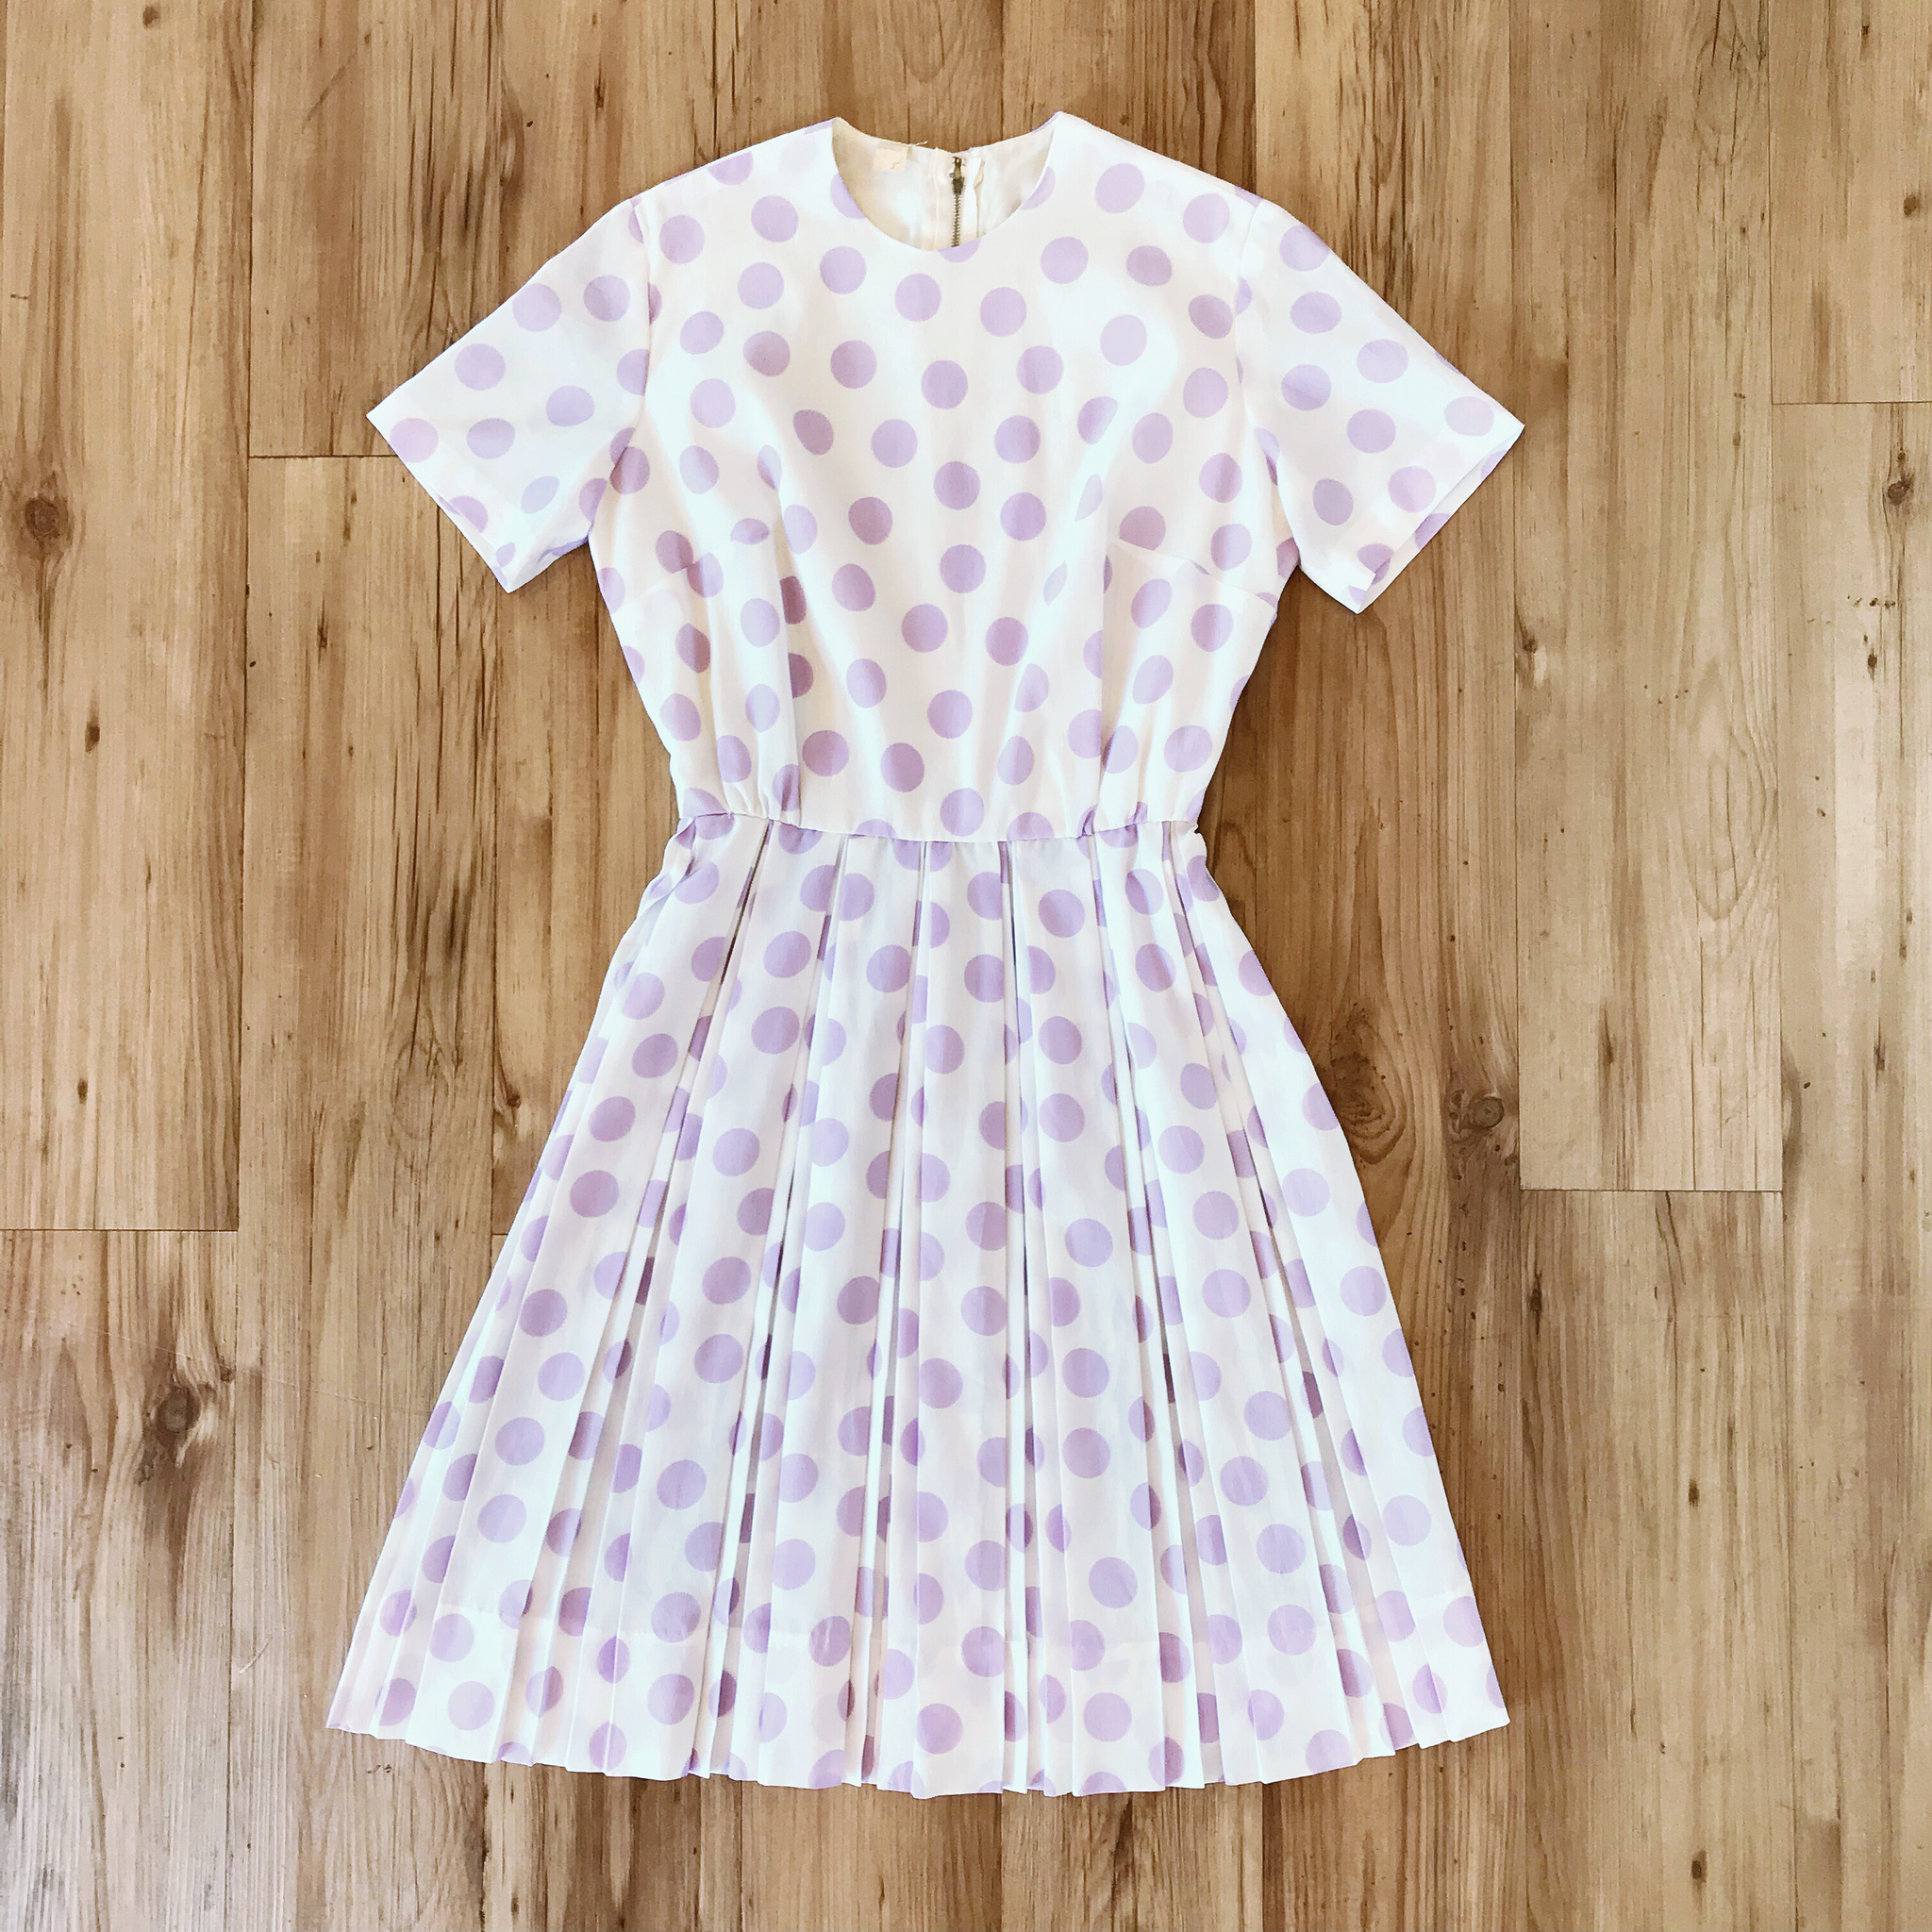 1950s Pretty Pastel Purple Polka Dot Dress